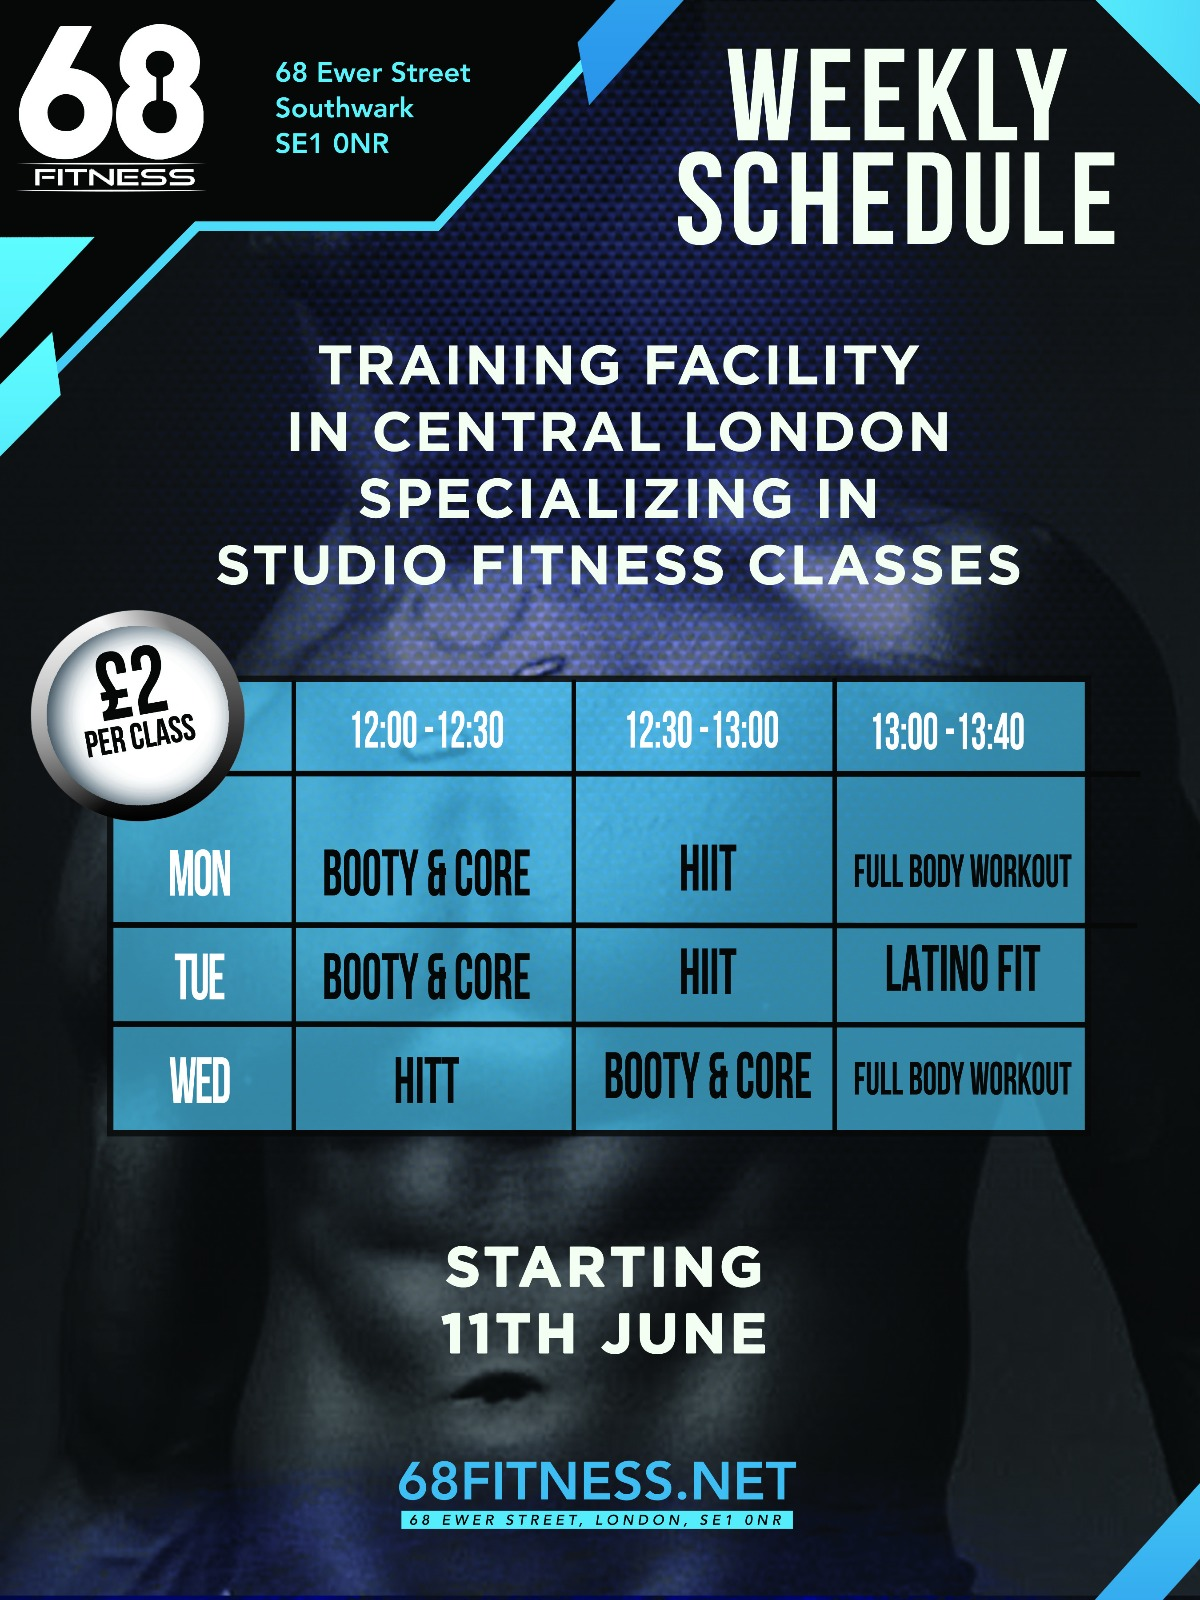 68 Fitness Timetable